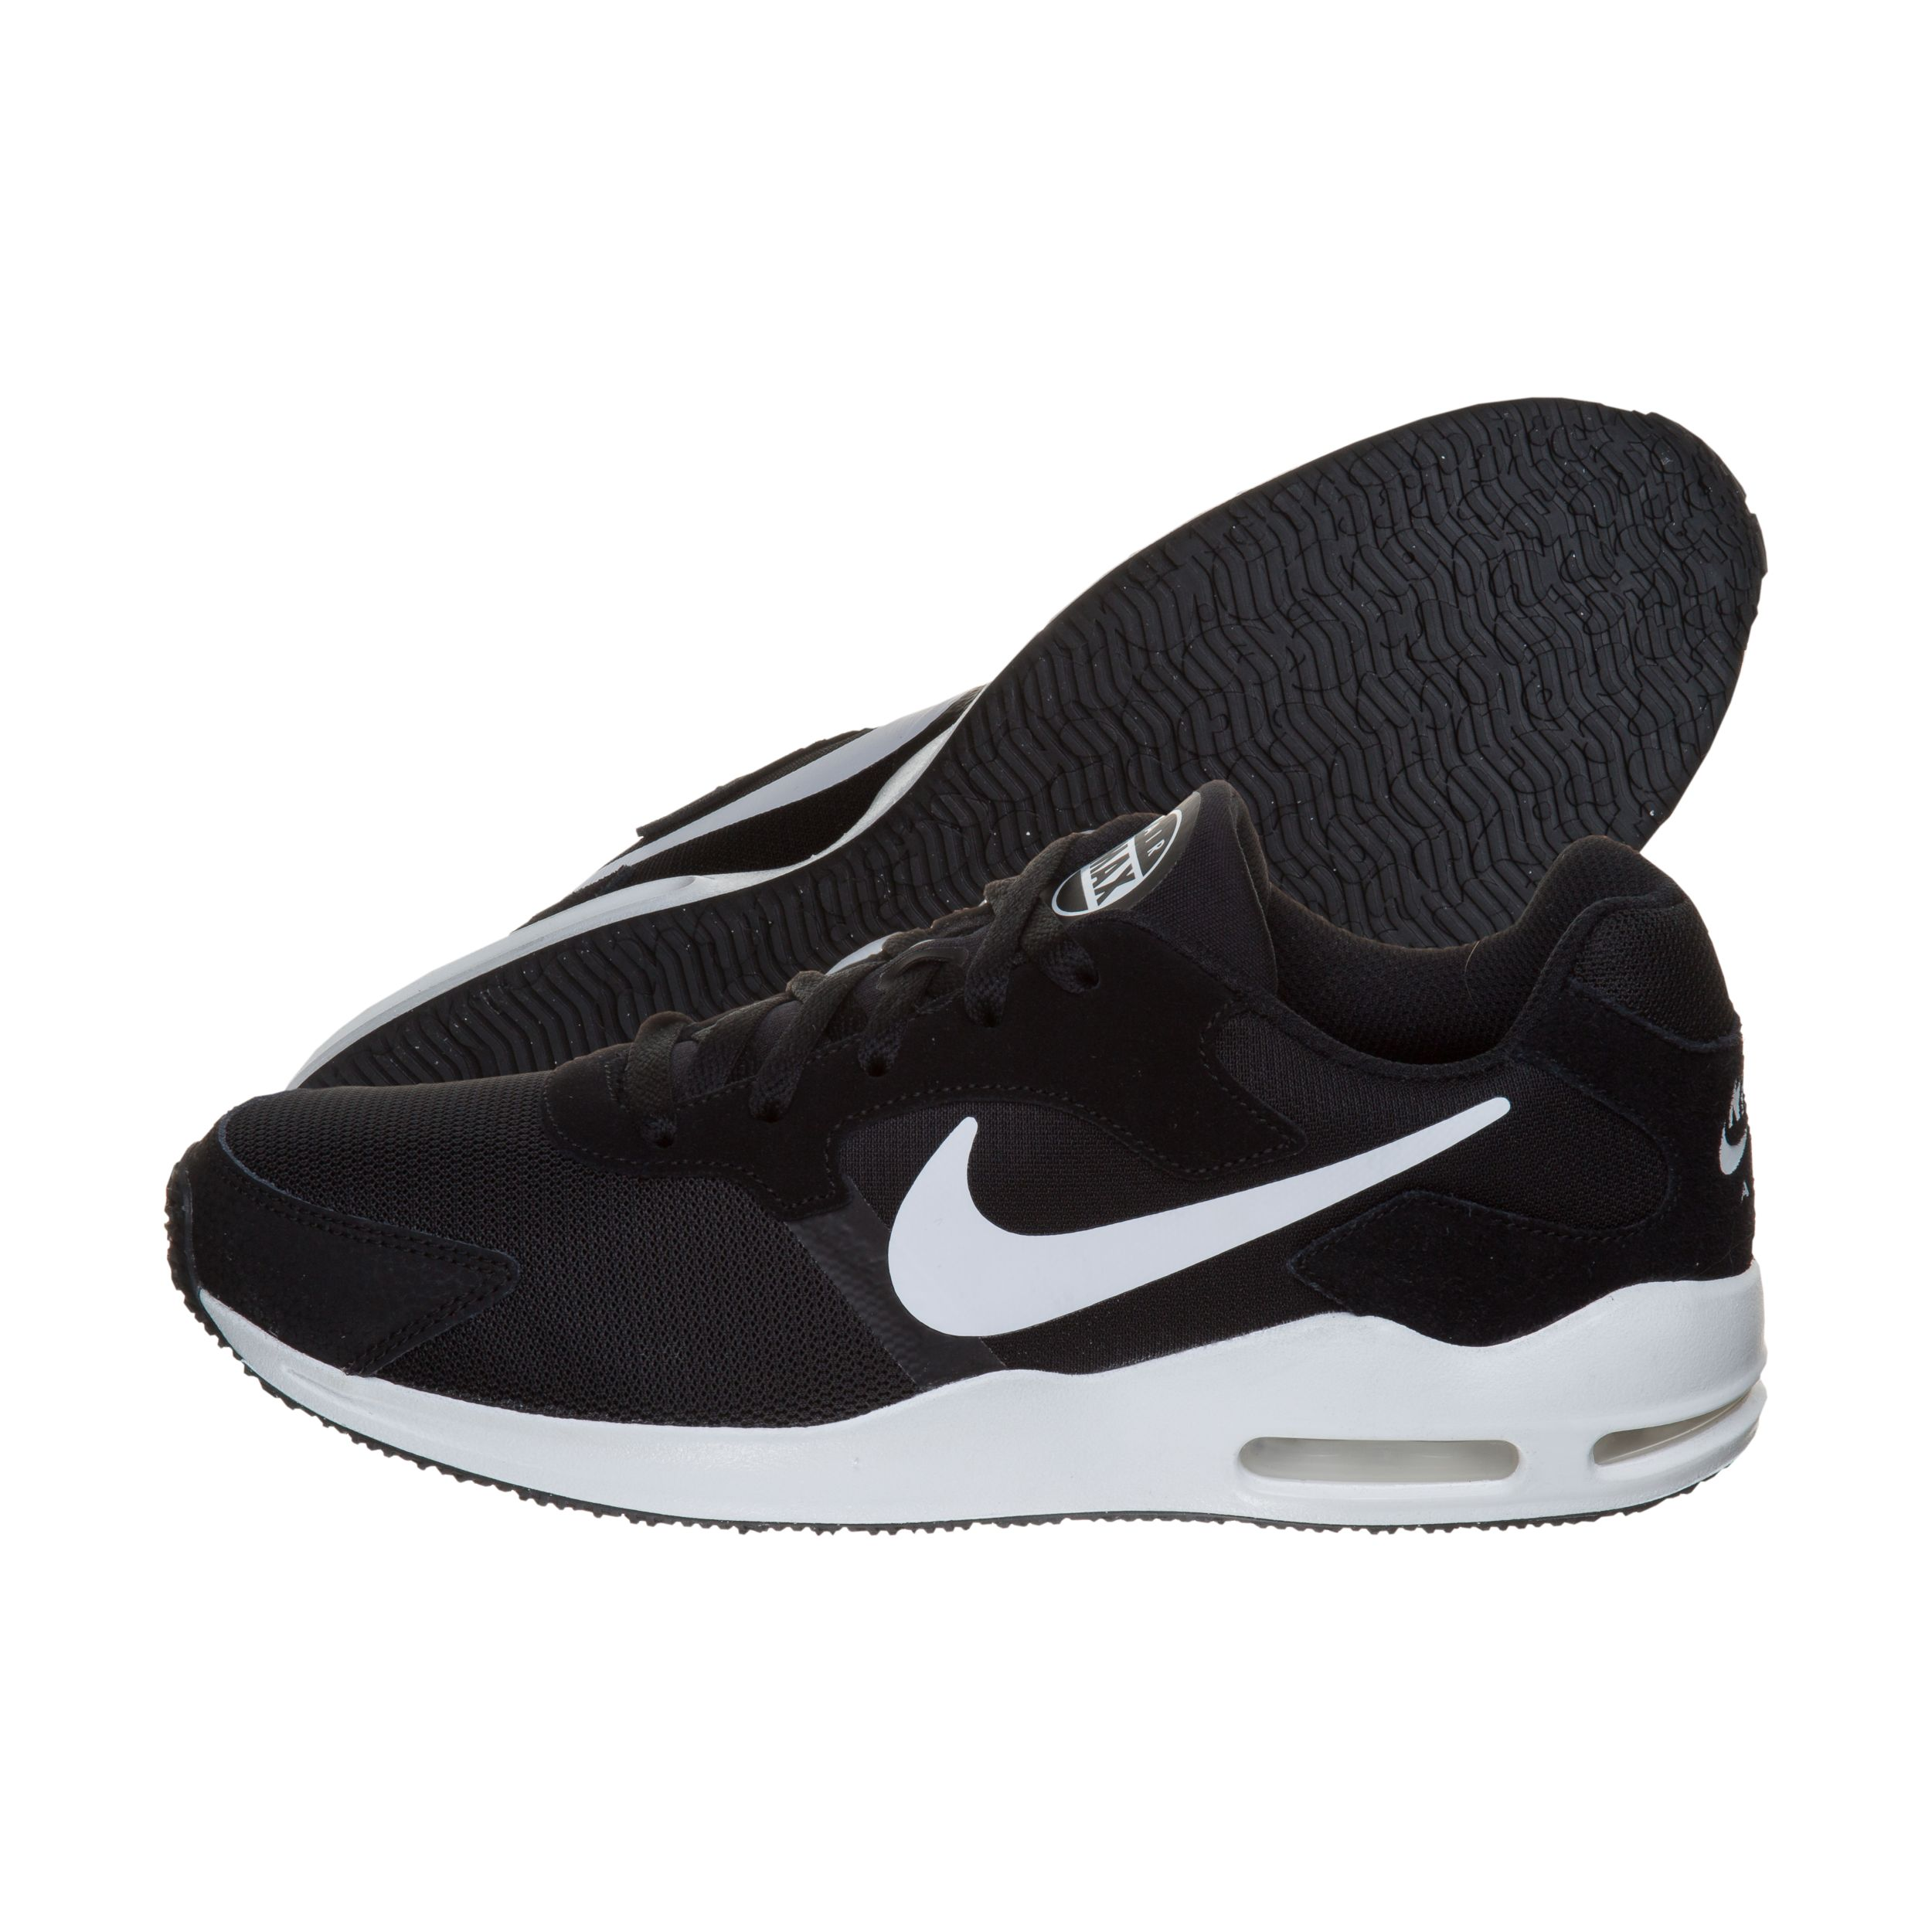 best service 39cf3 60bb8 Teamsport Philipp  Nike Air Max Guile 916768-004  günstig on